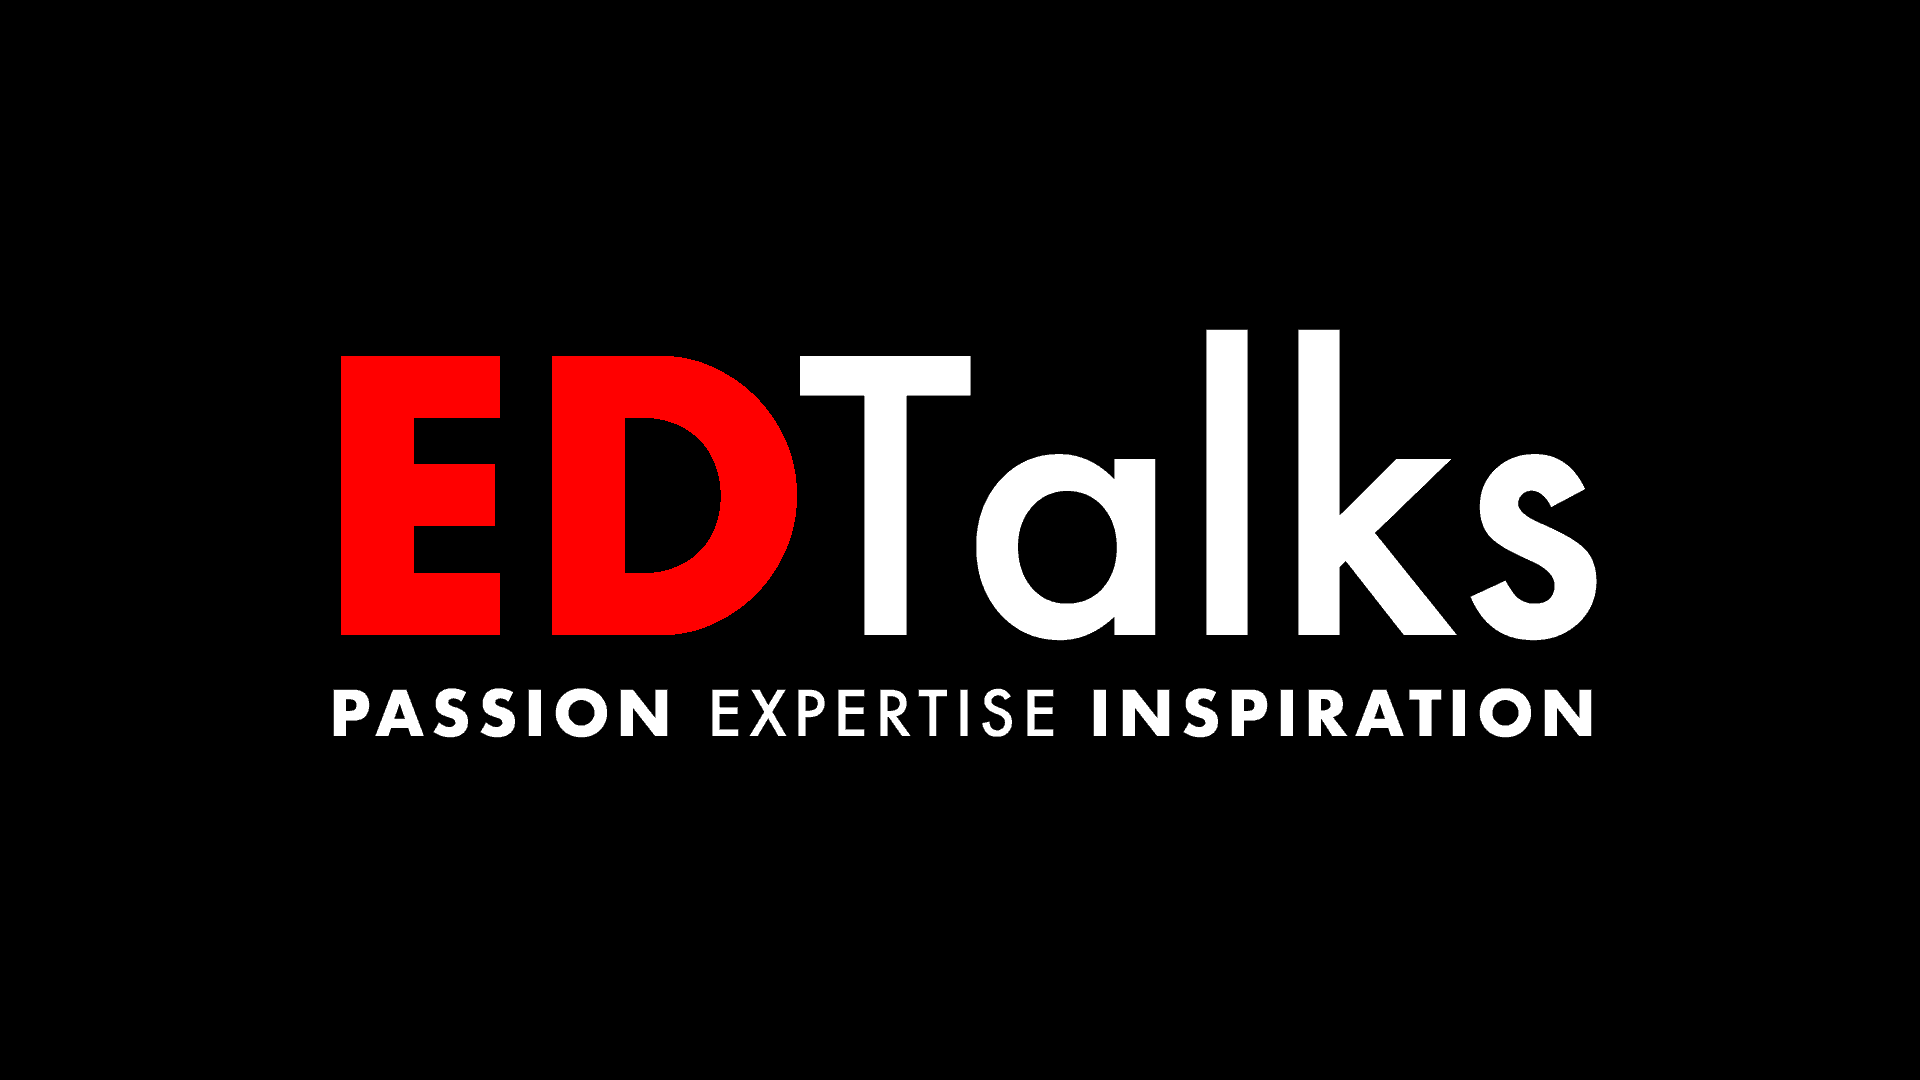 EDTalks - Passion, Expertise, Inspiration